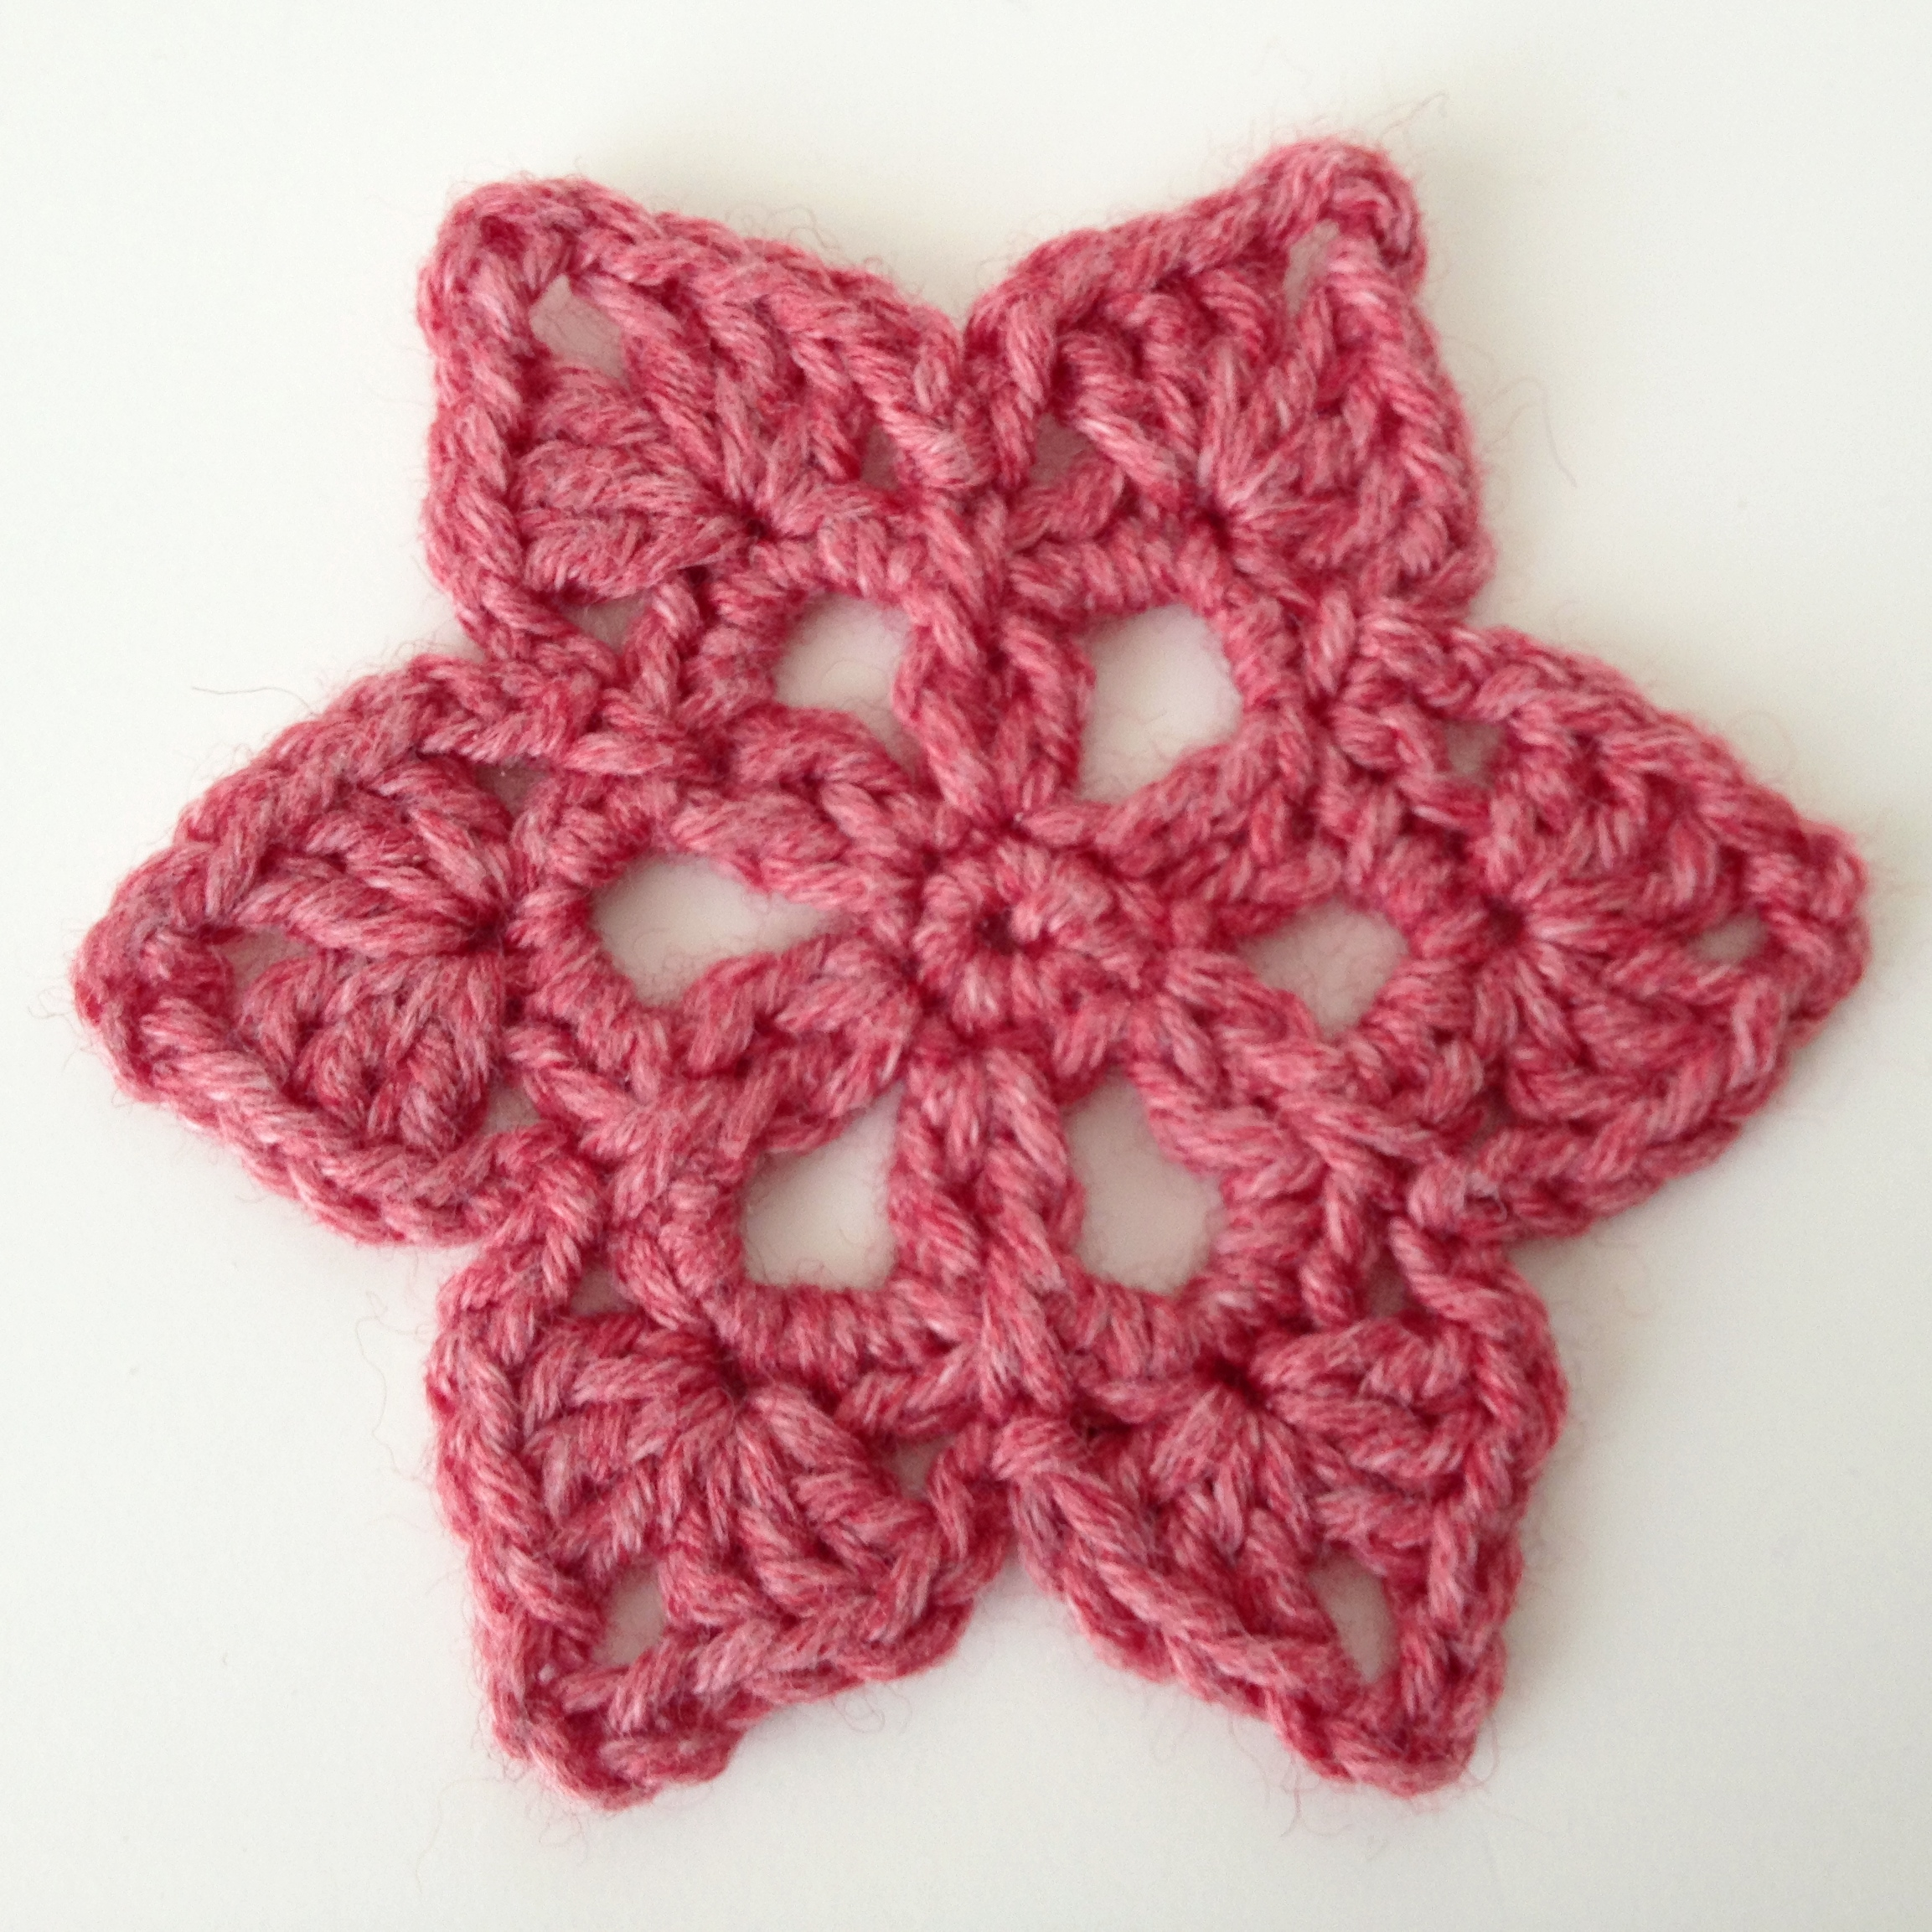 Crochet Videos : Crochet motif #36 from the book ?Beyond the square Crochet motifs?